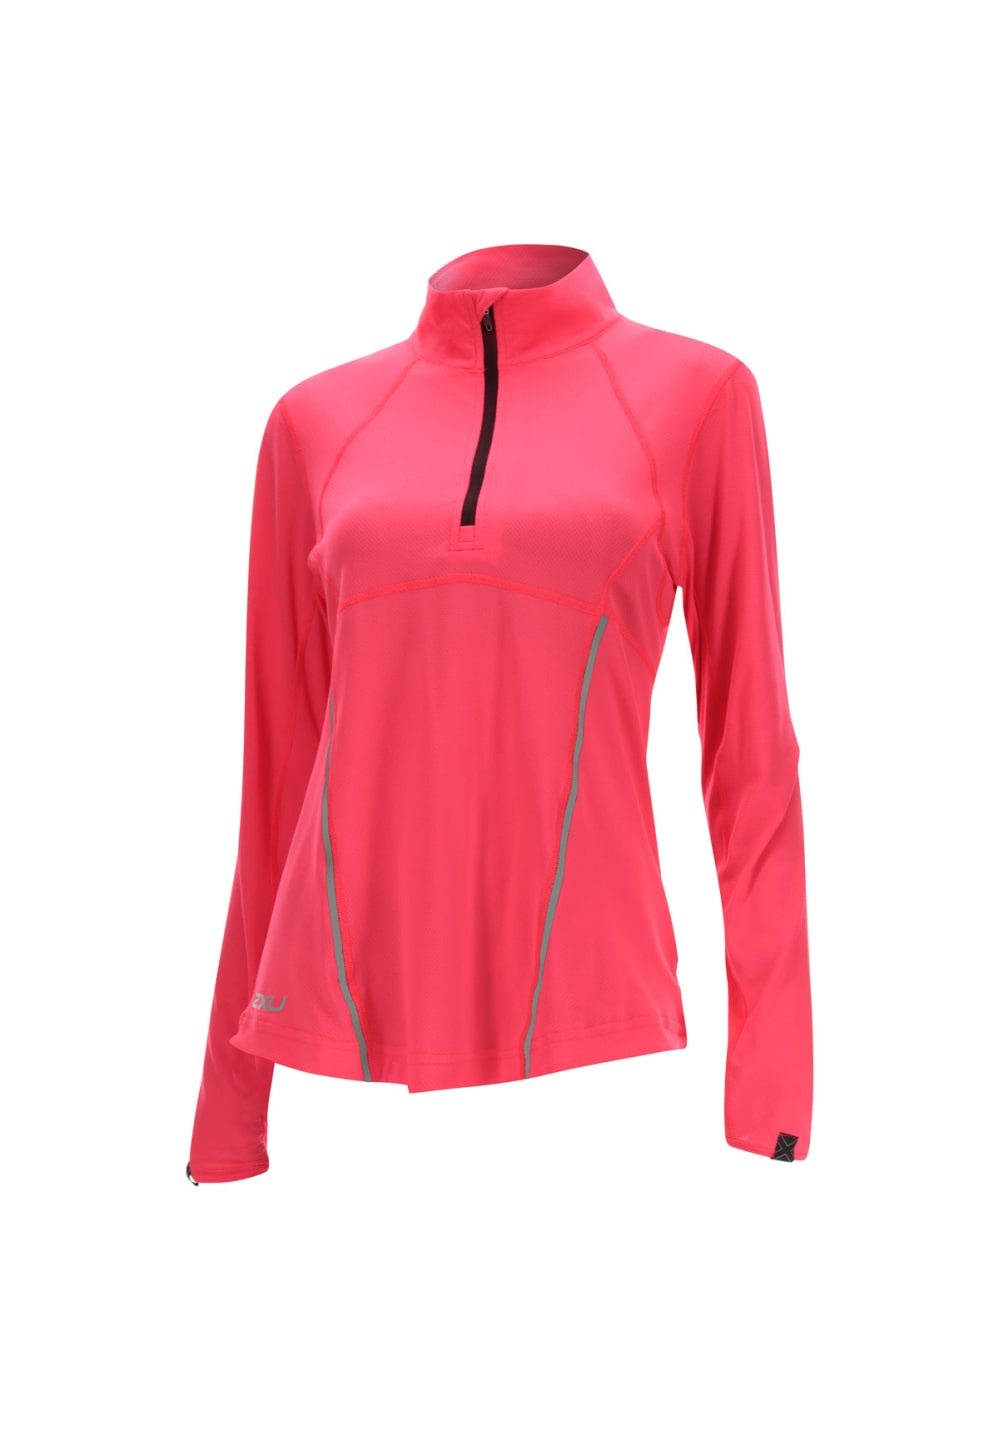 2XU Thermal Active 1/4 Zip - Laufshirts für Damen - Rot, Gr. S